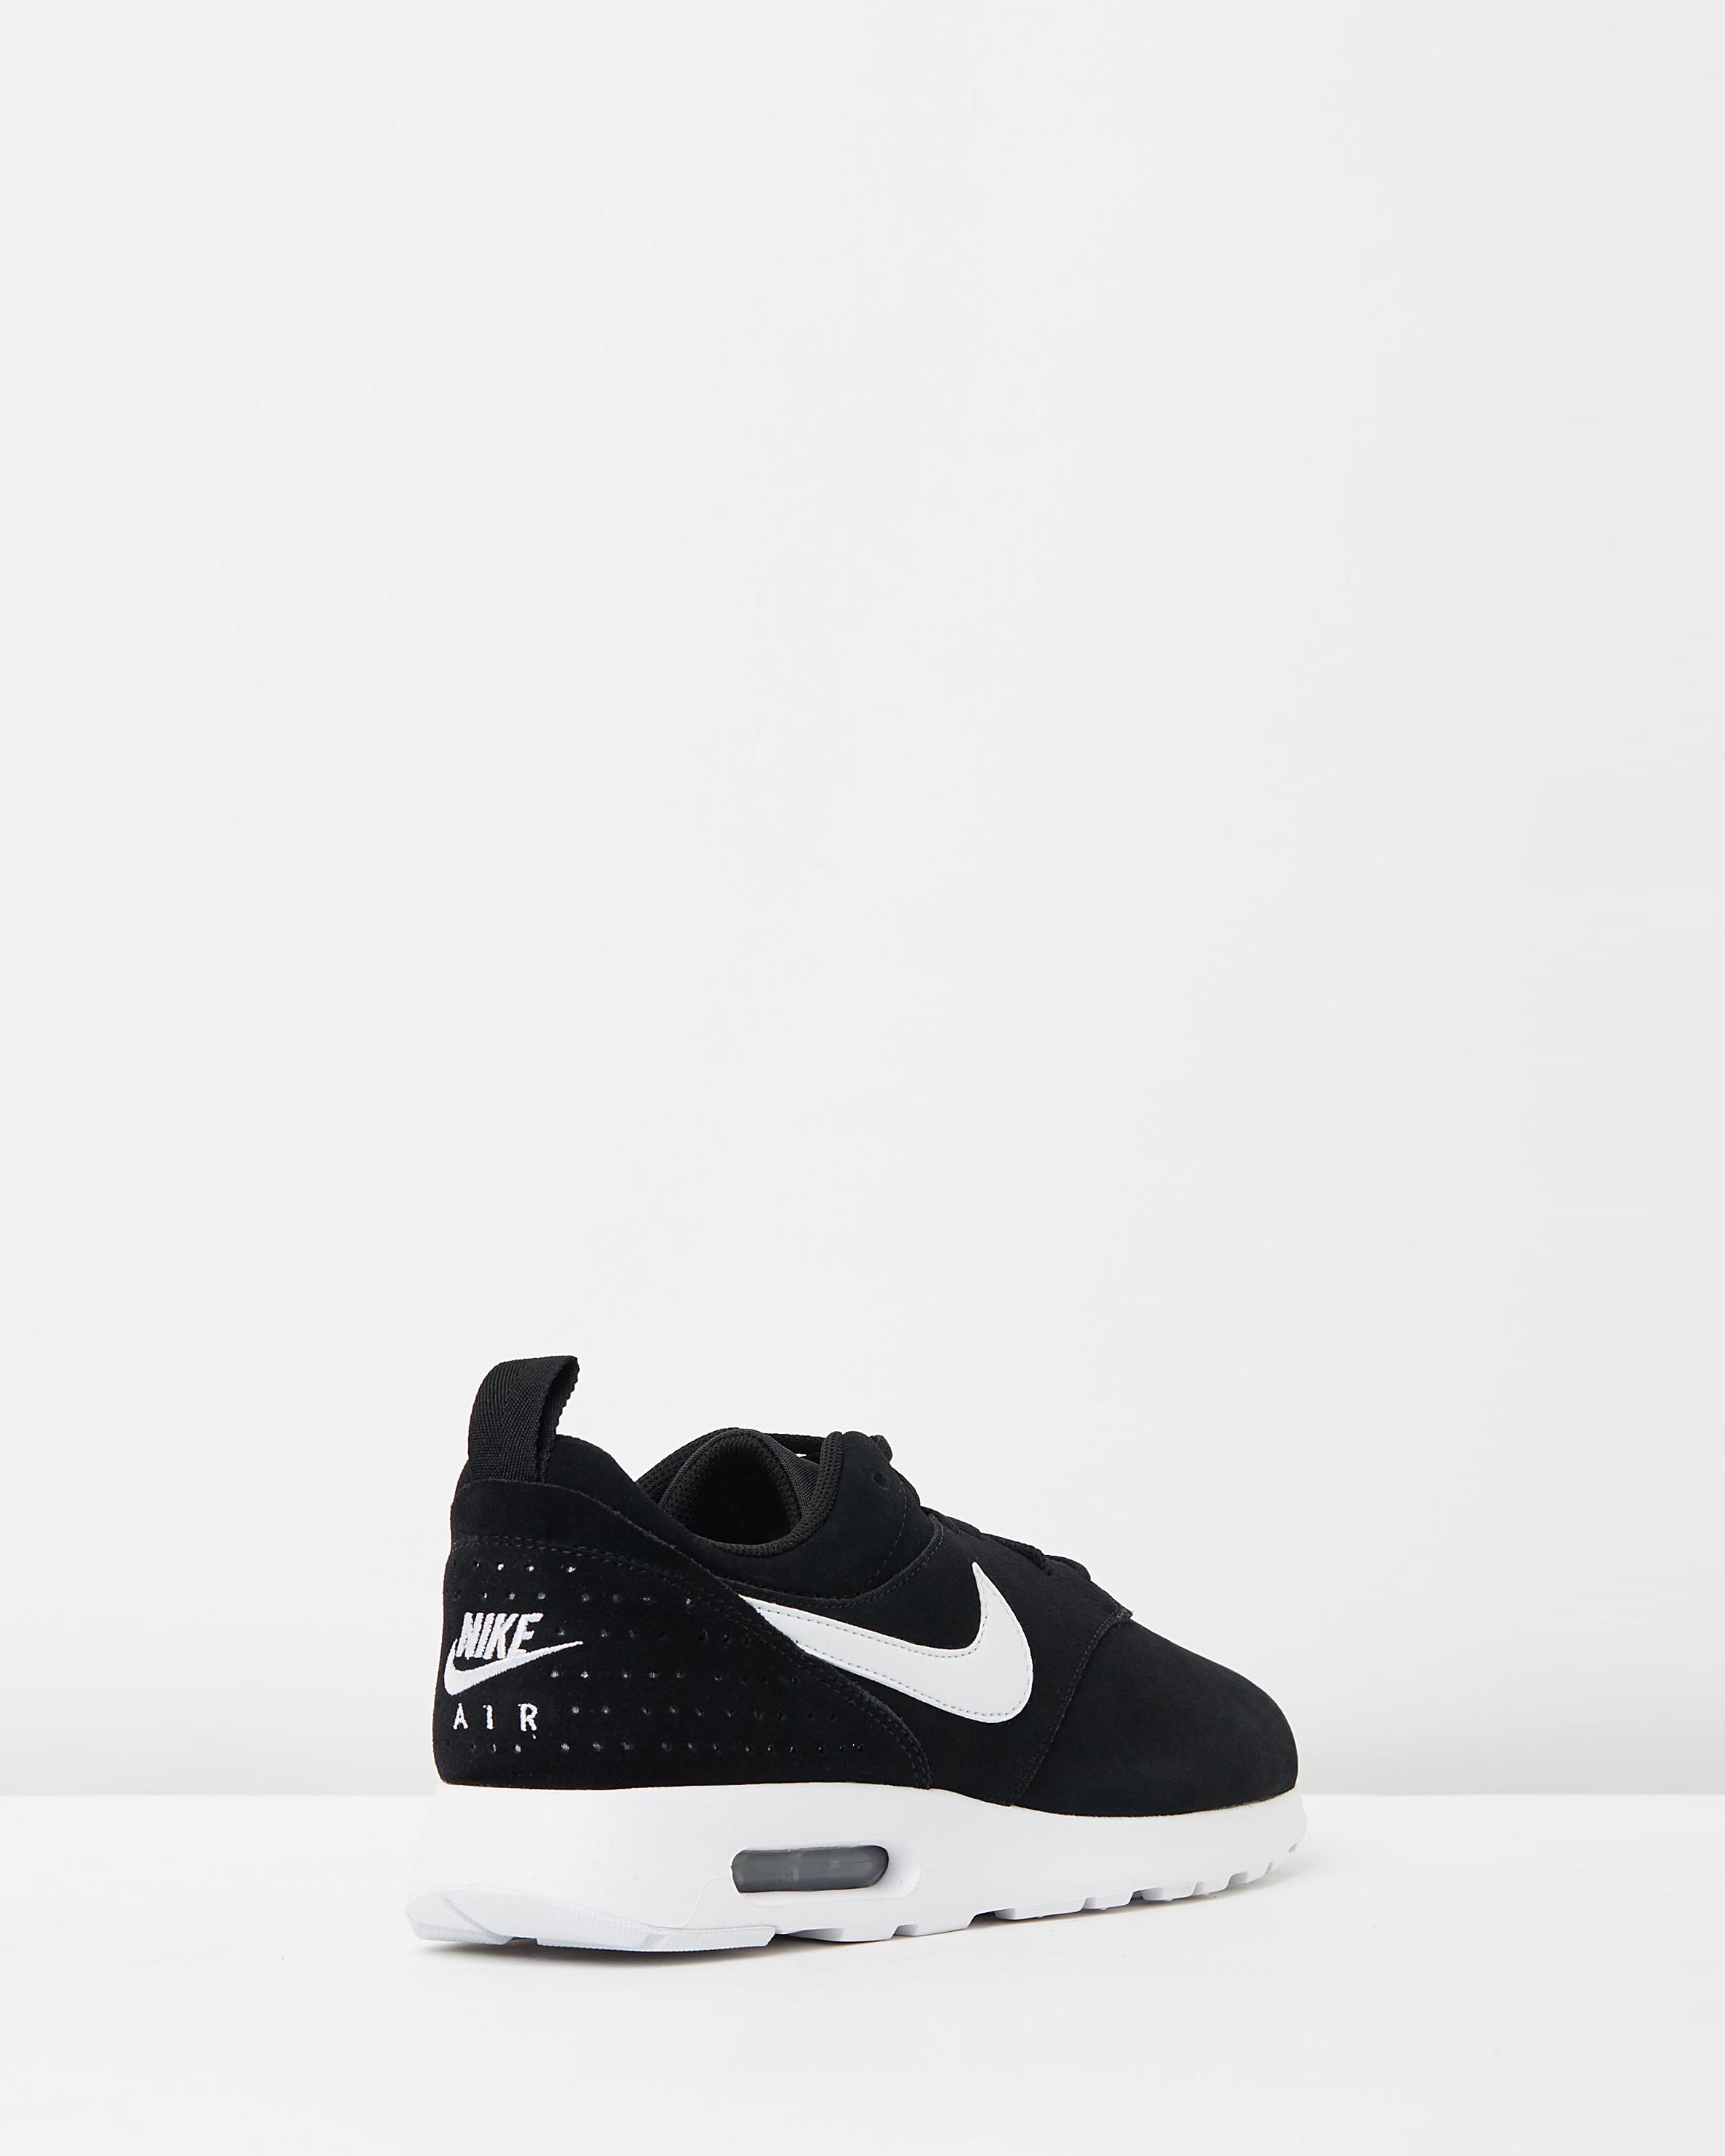 nike air max tavas black white 2